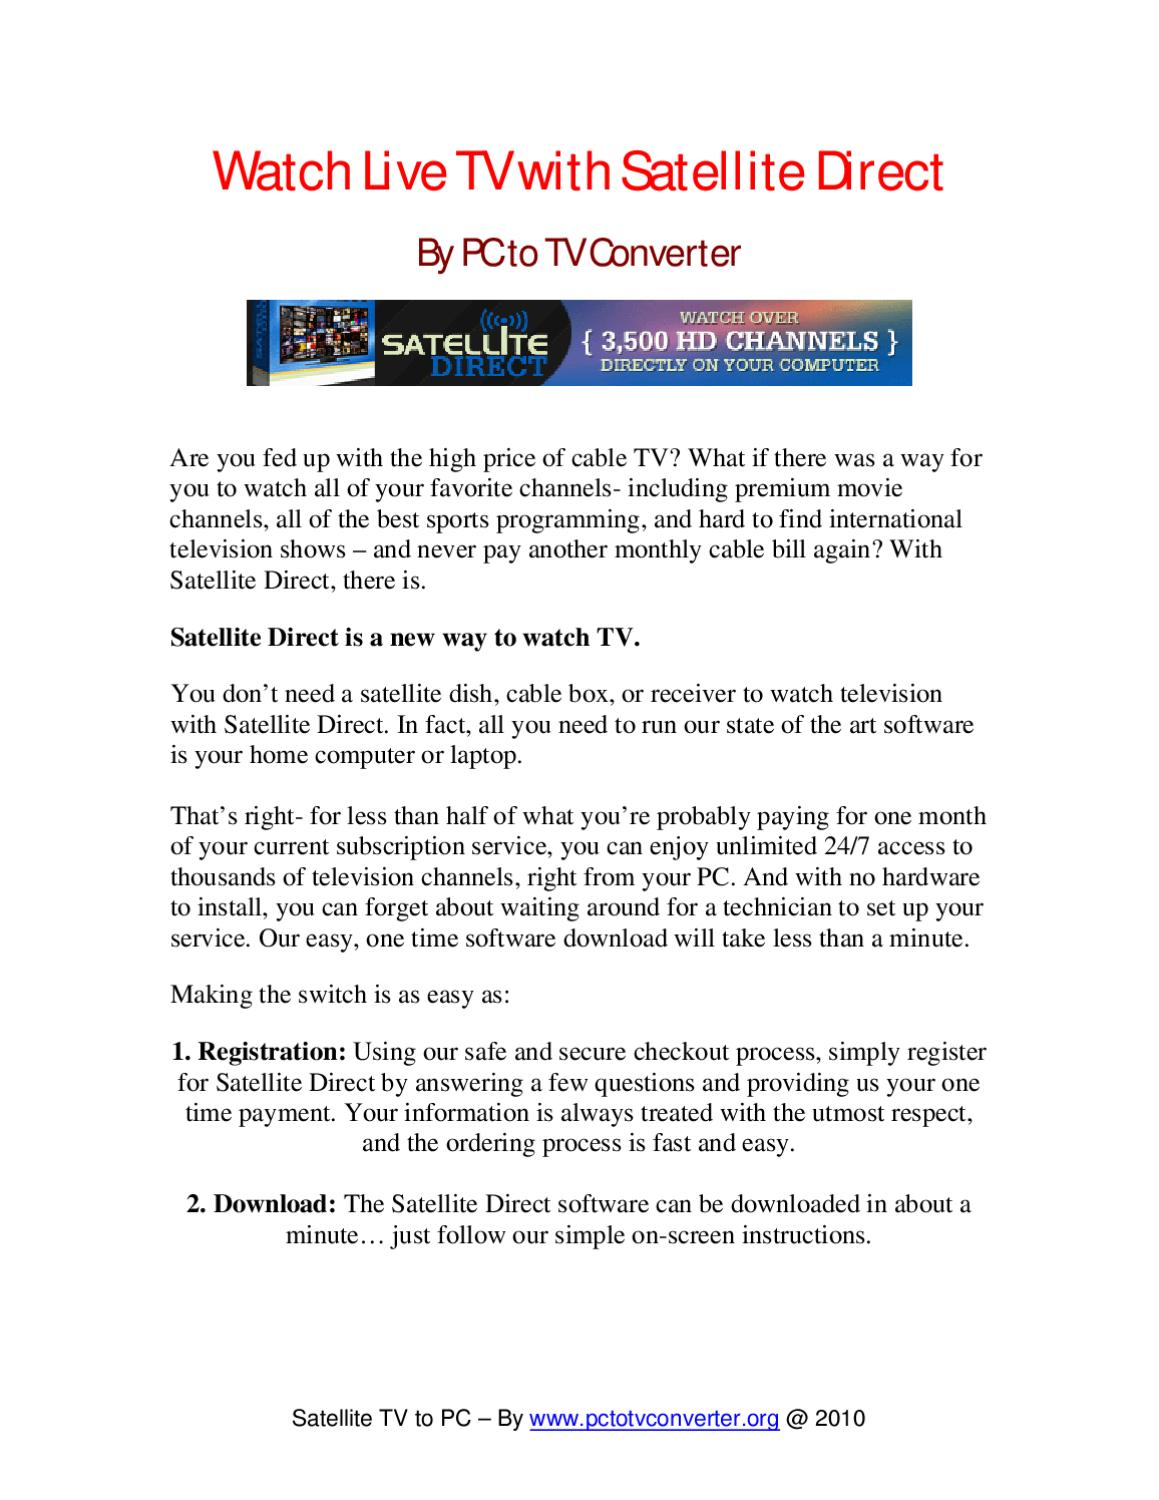 Easiest Way To Watch Satellite TV to PC by Sue Lemieux - issuu